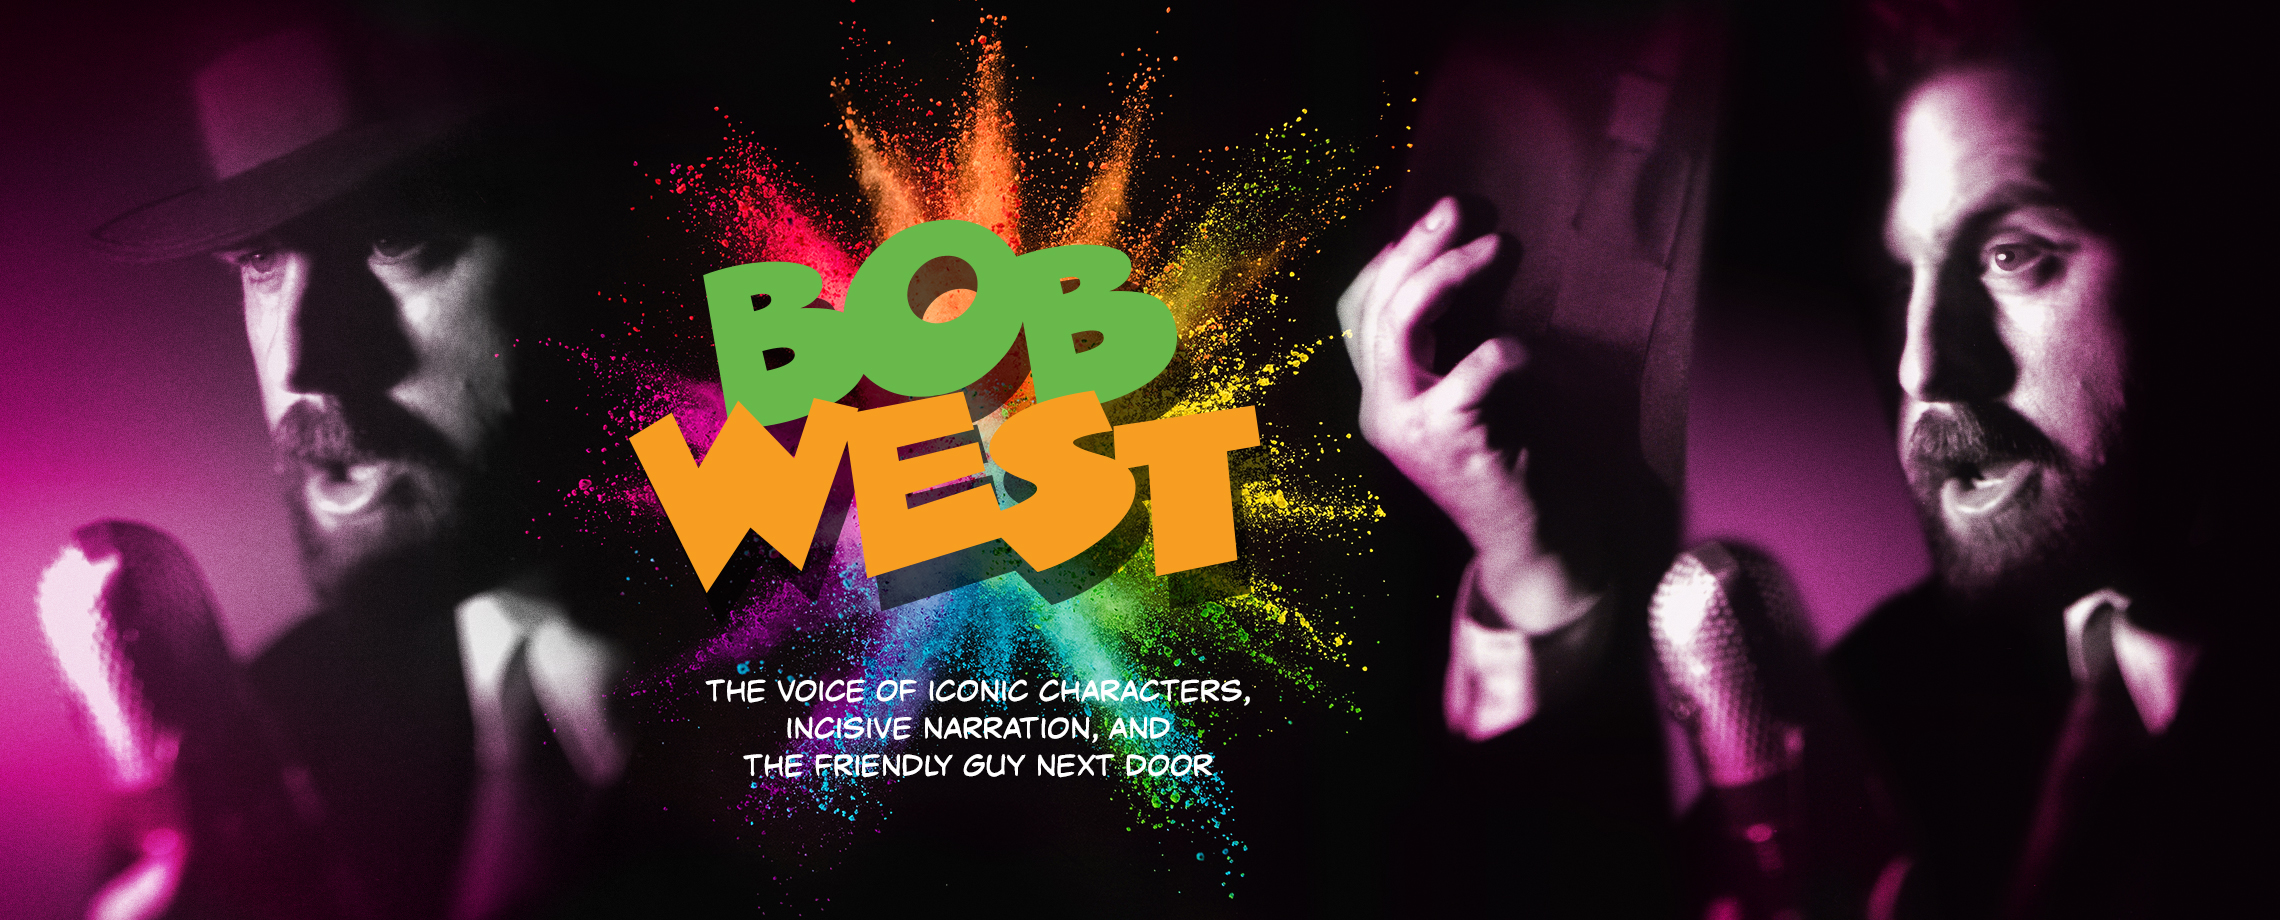 Bob West – Voice of iconic characters, incisive narration, and the friendly guy next door